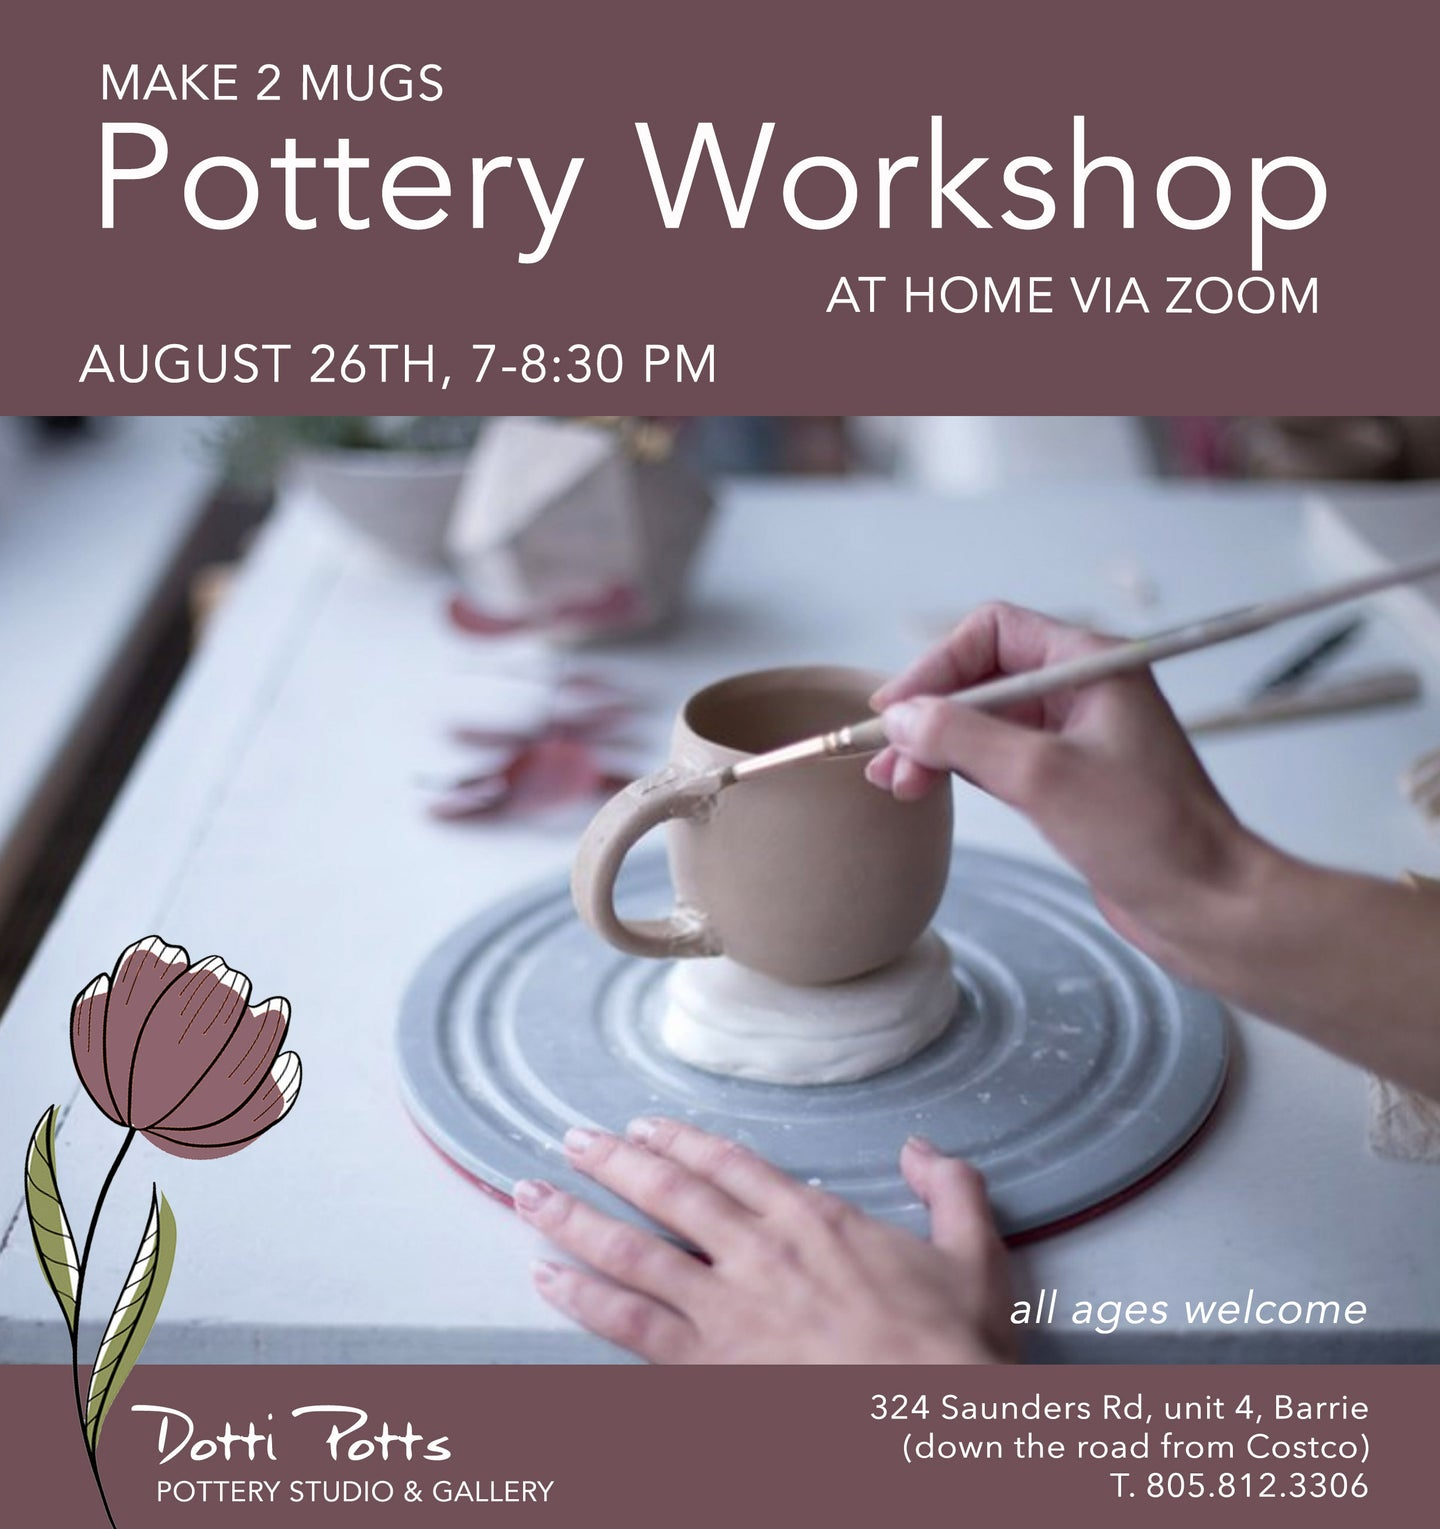 Virtual workshop to make two mugs on August 26